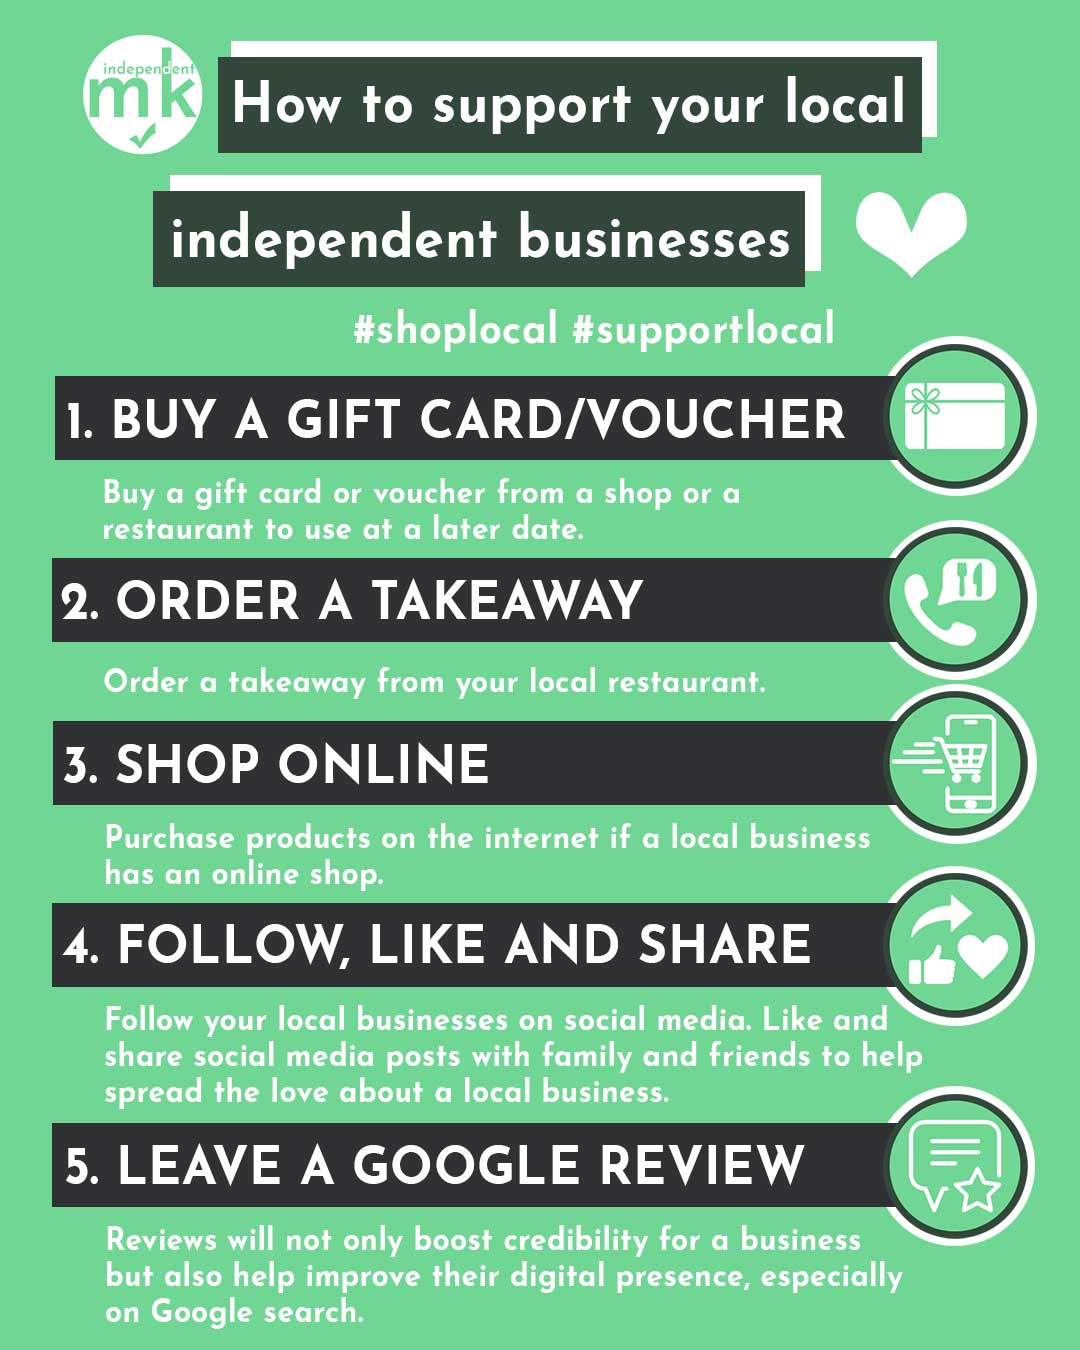 5 ways to support independent businesses during coronavirus